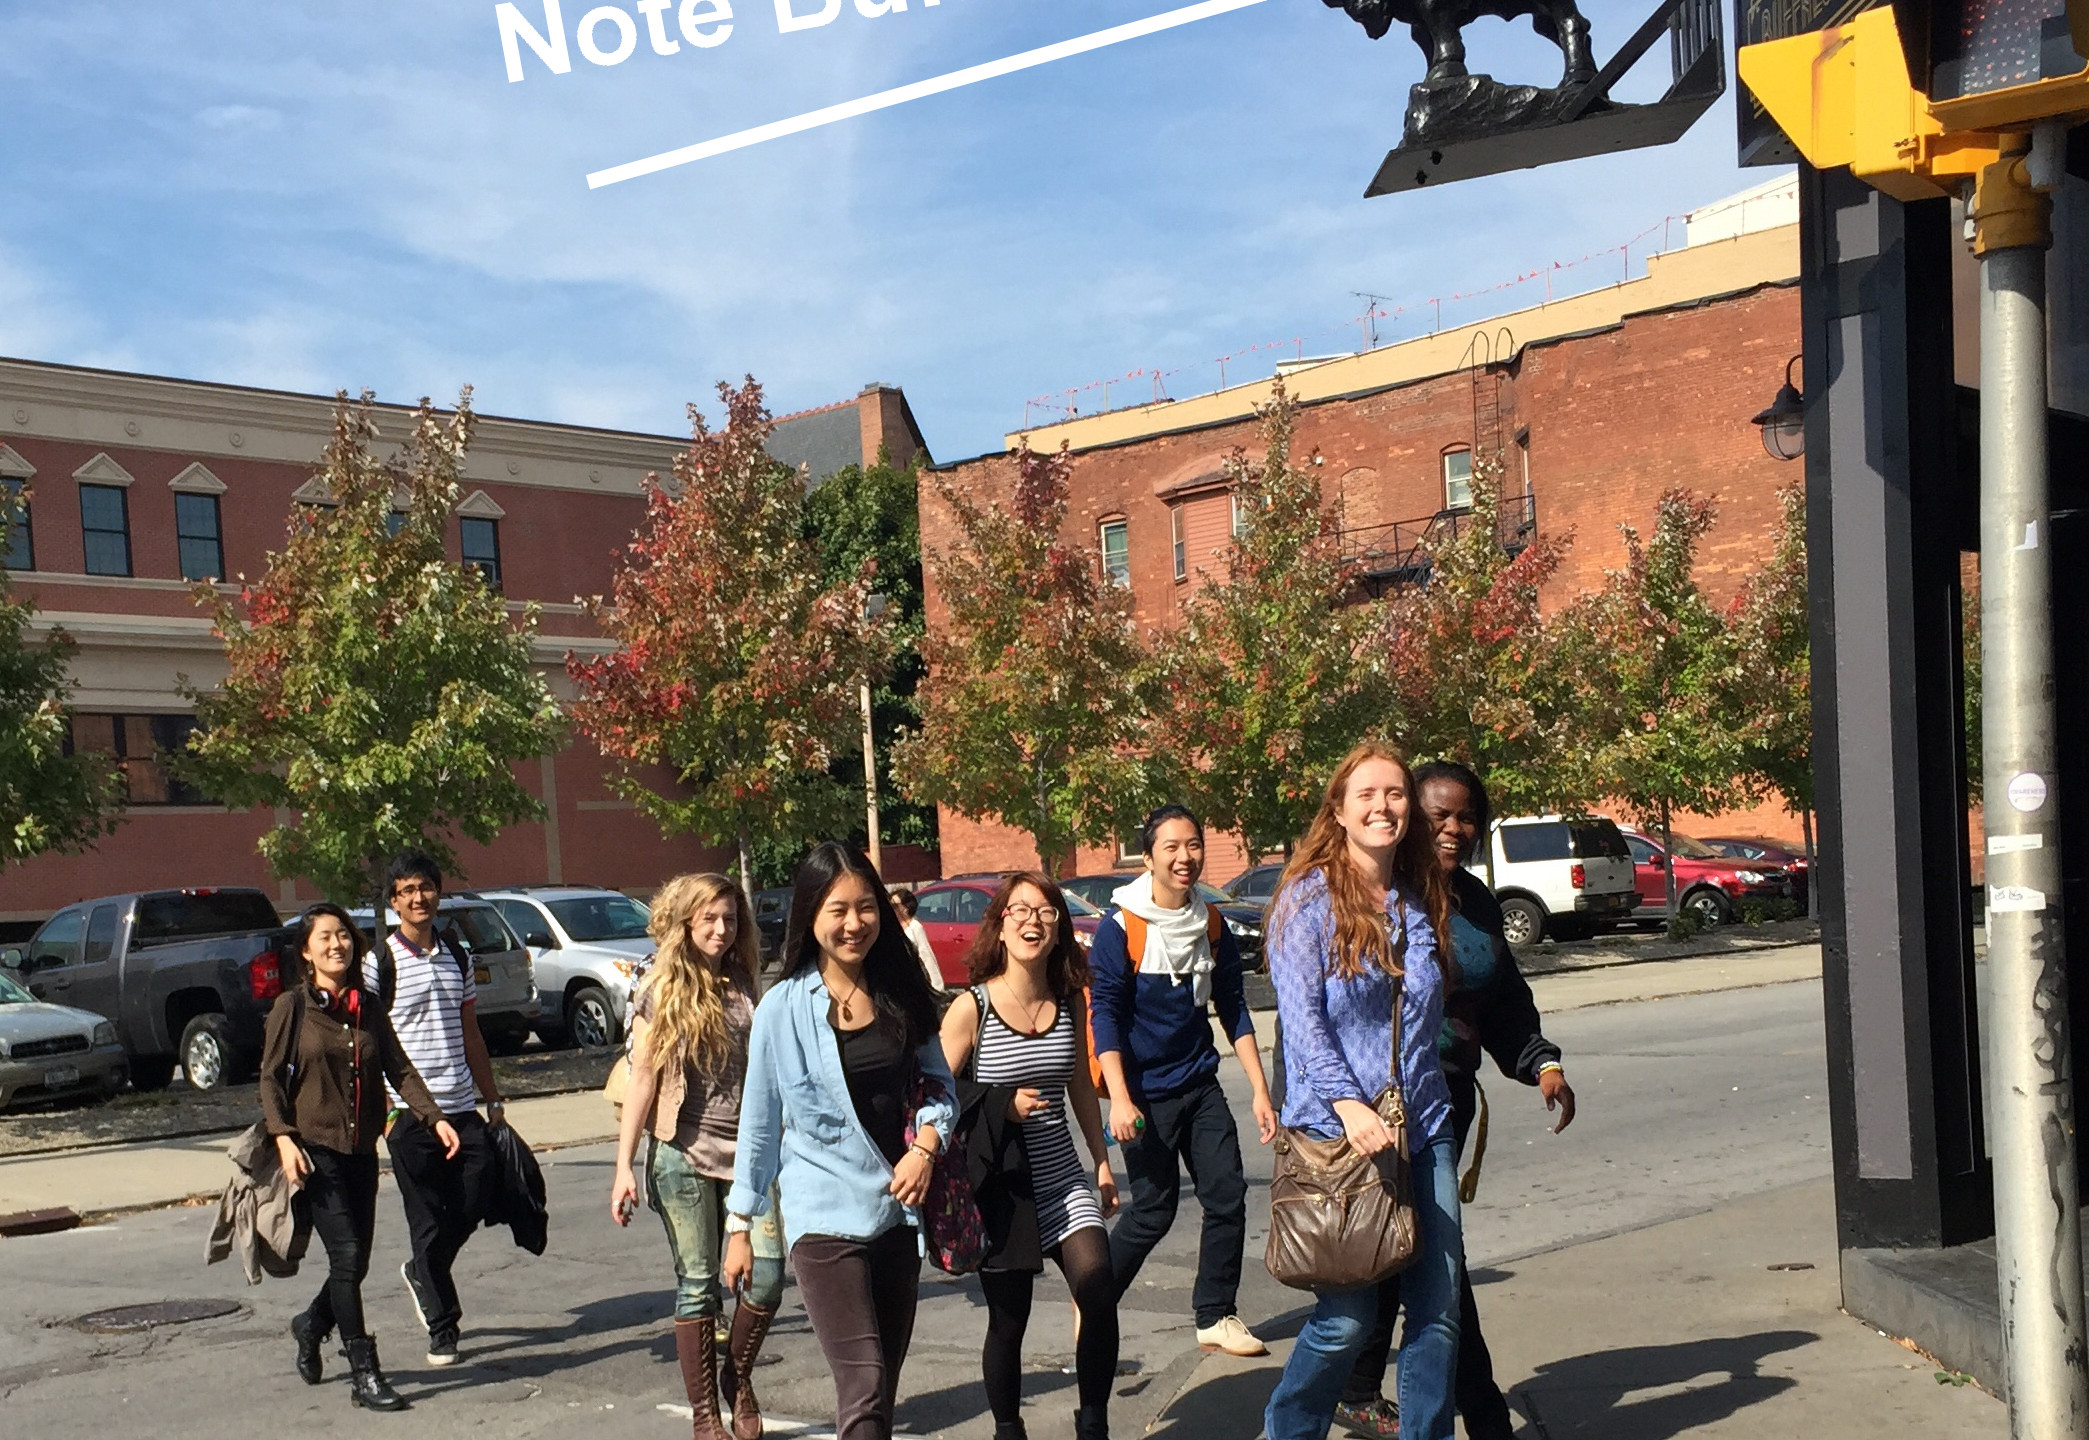 Students walk between Hallwalls and CEPA Galleries in their recent trip that also included the Albright-Knox Gallery.